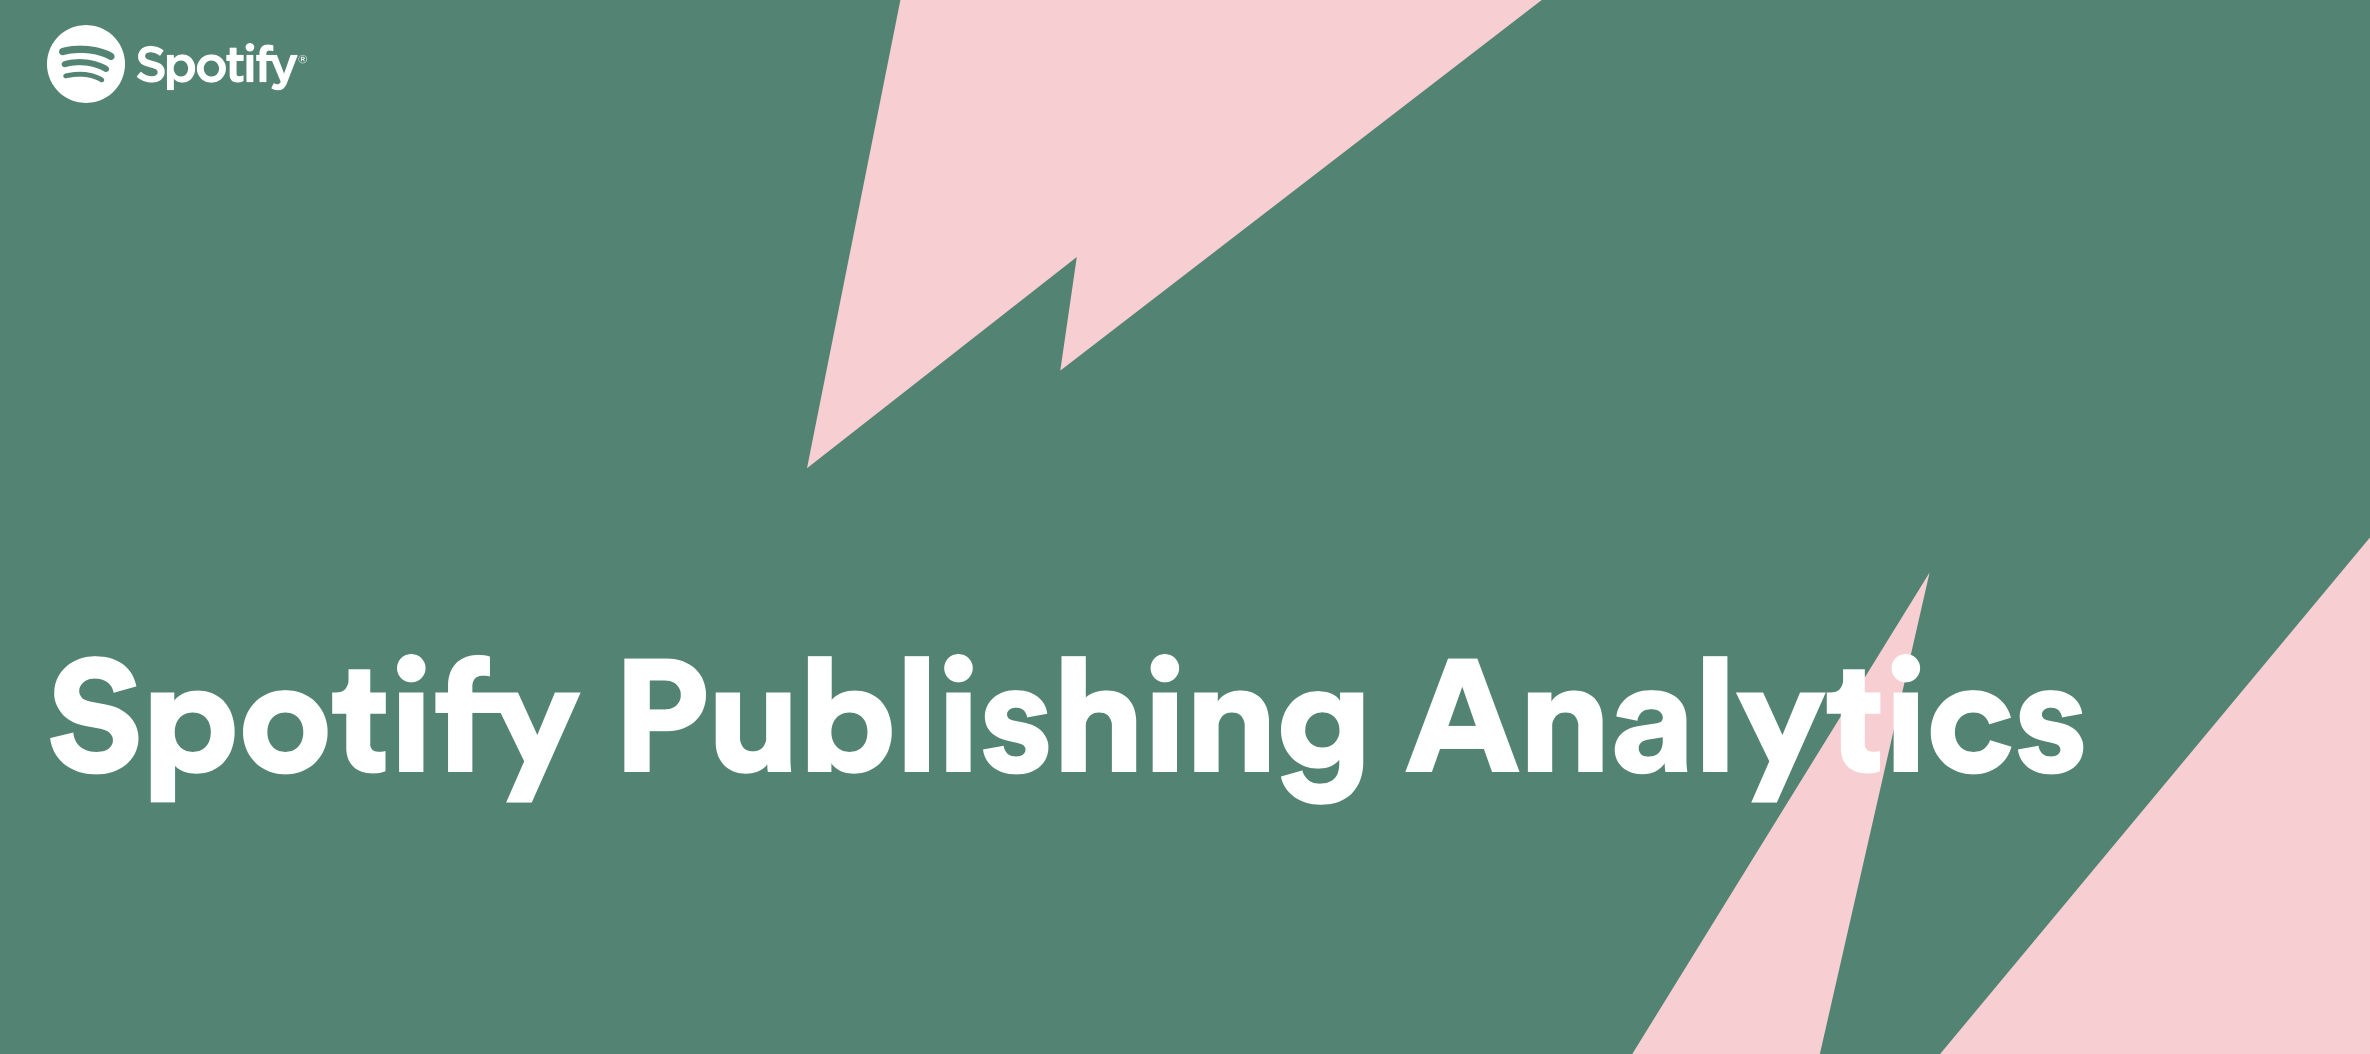 Photo: Spotify Publishing Analytics